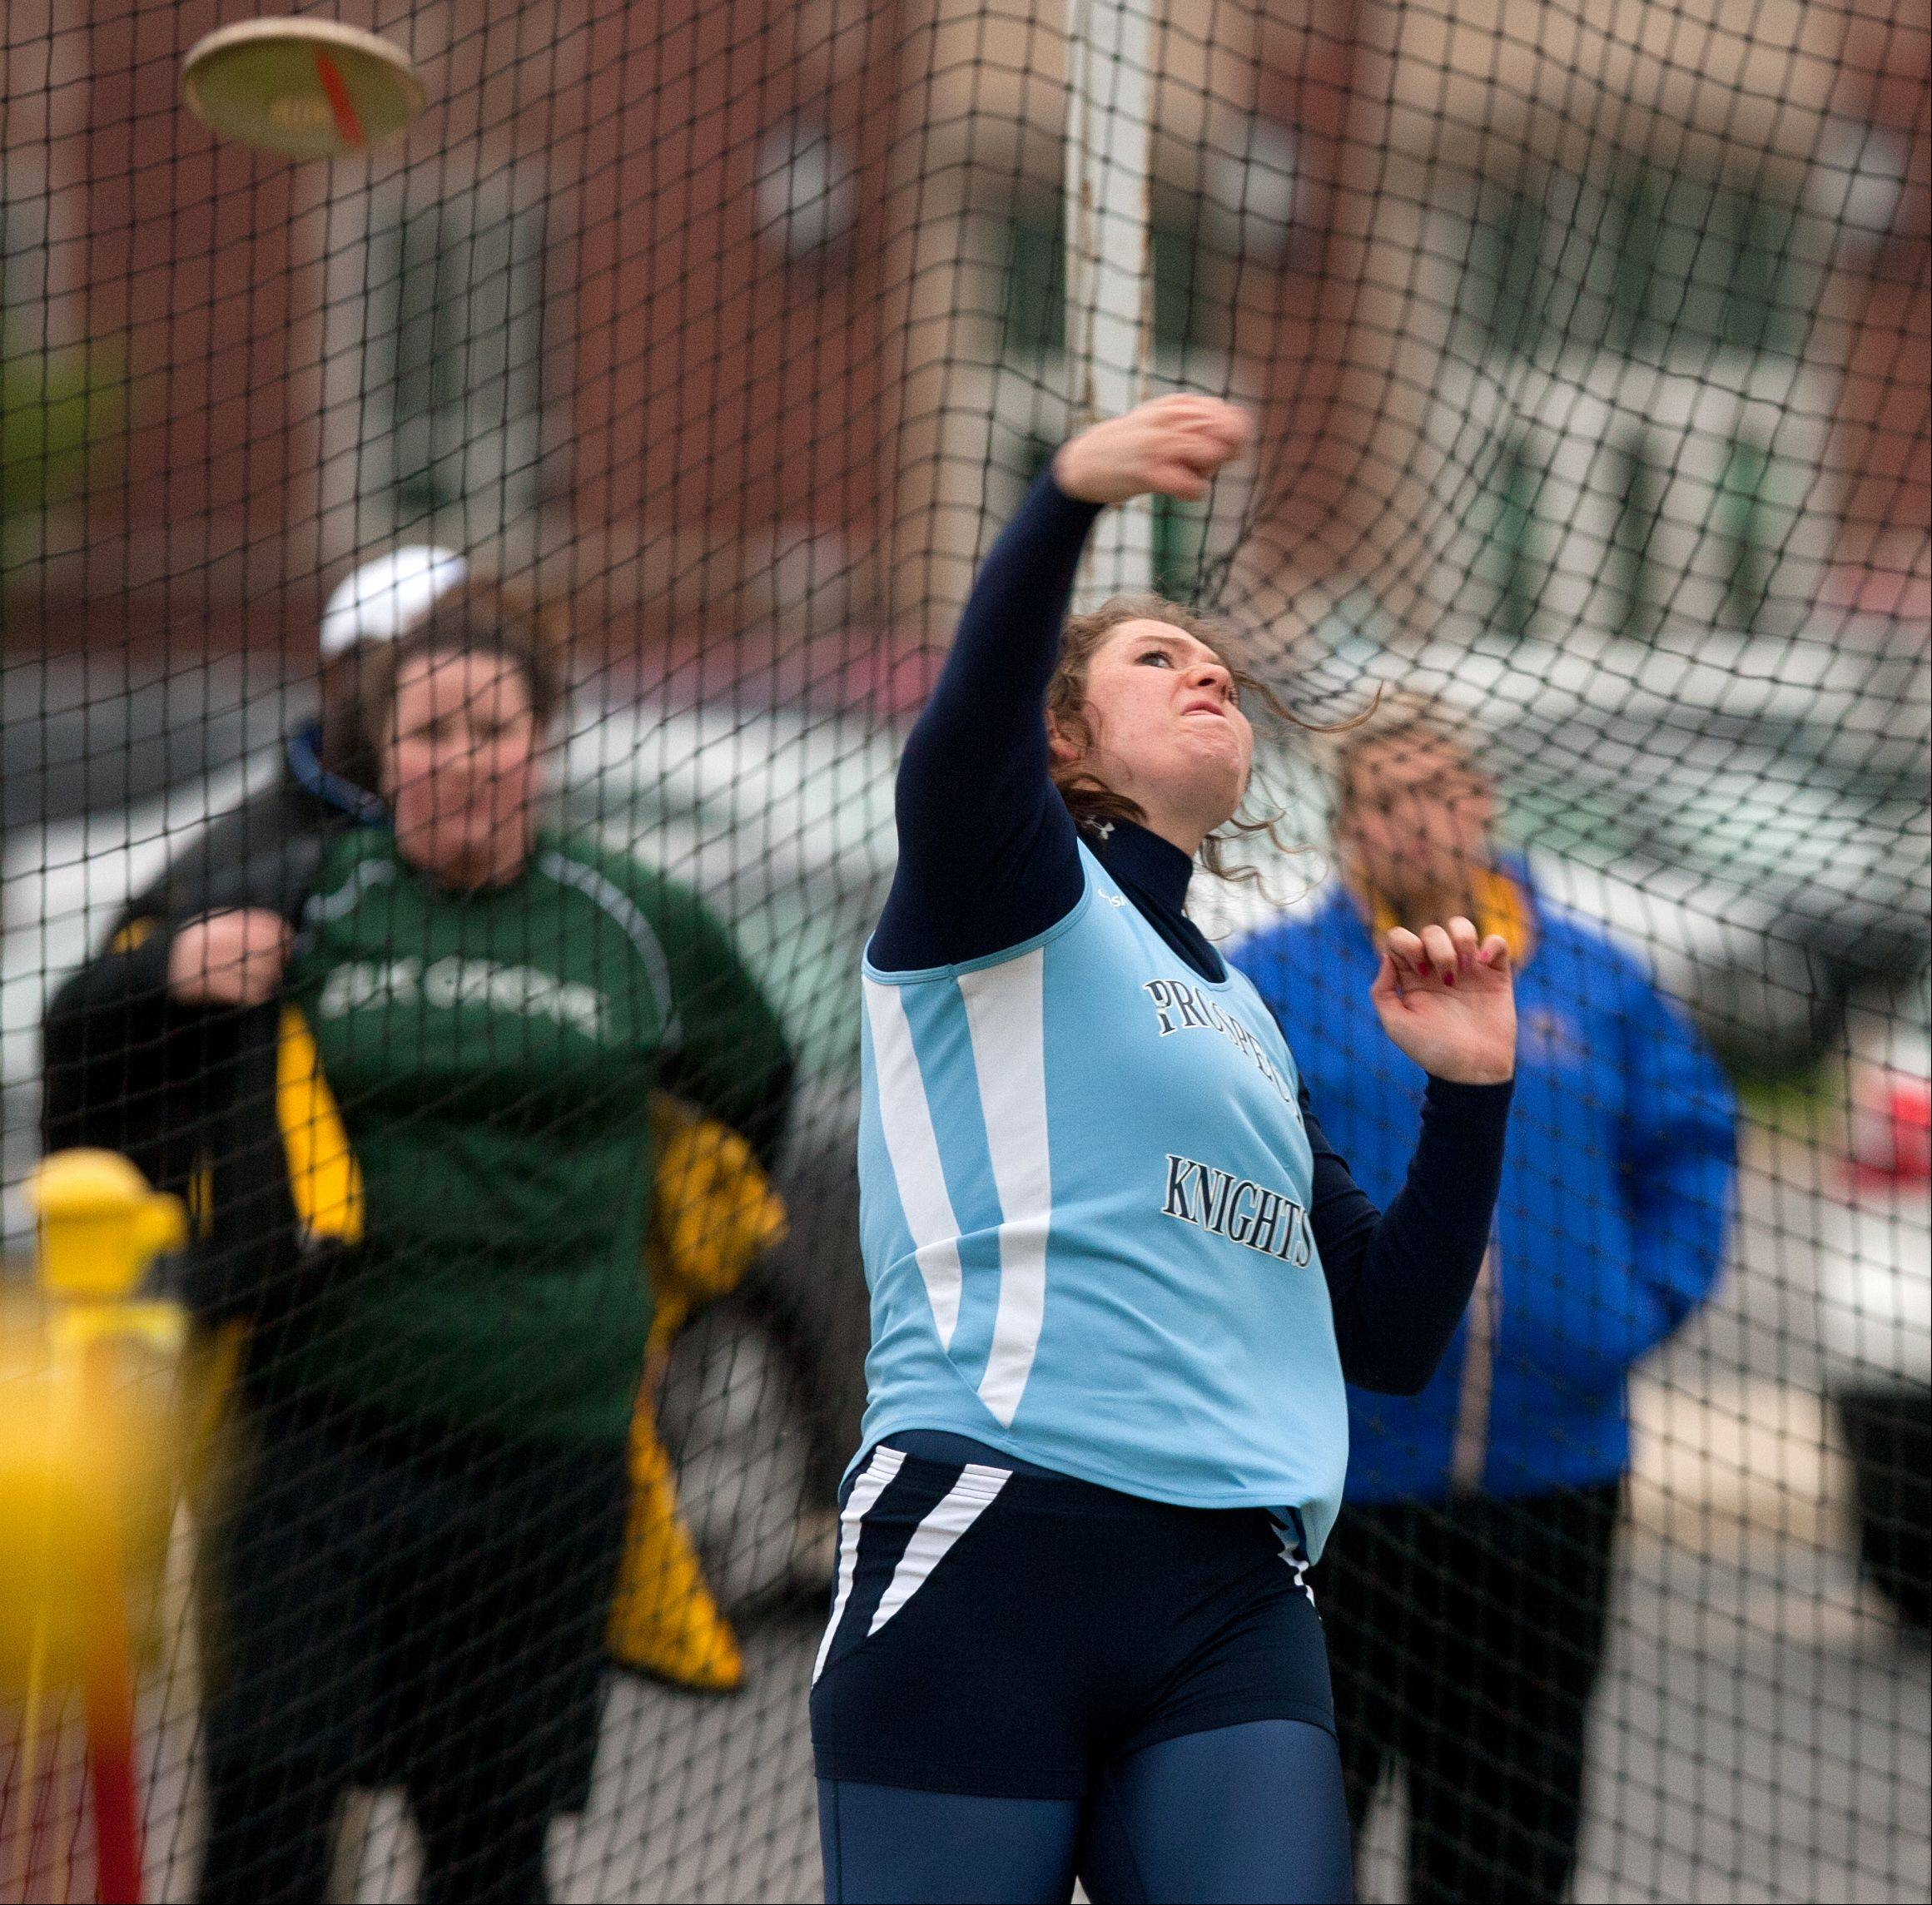 Prospect's Alicia Nicolau throws the discus during the York sectional Friday.